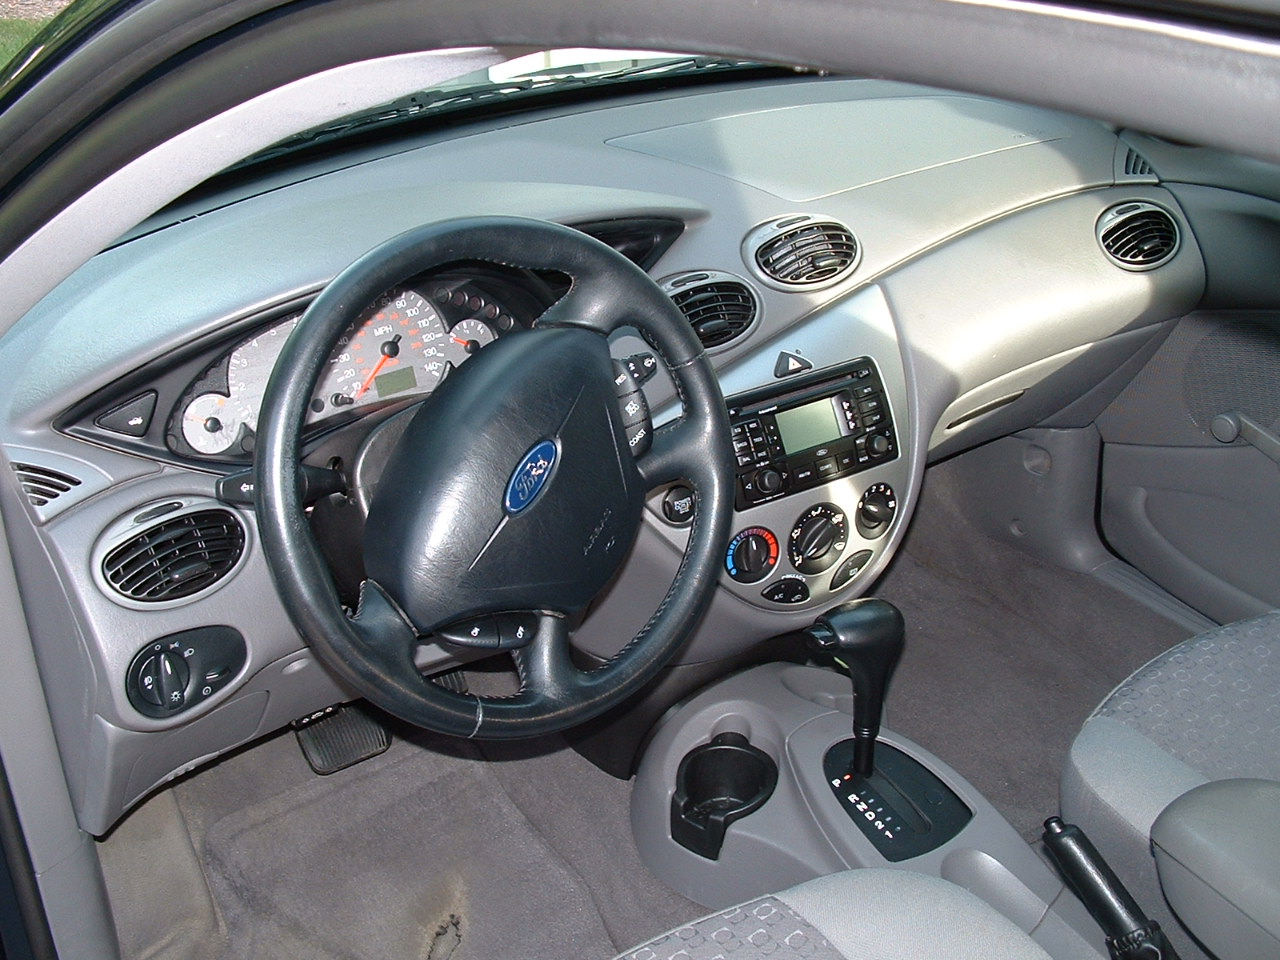 2003 Ford Focus Interior Pictures Cargurus